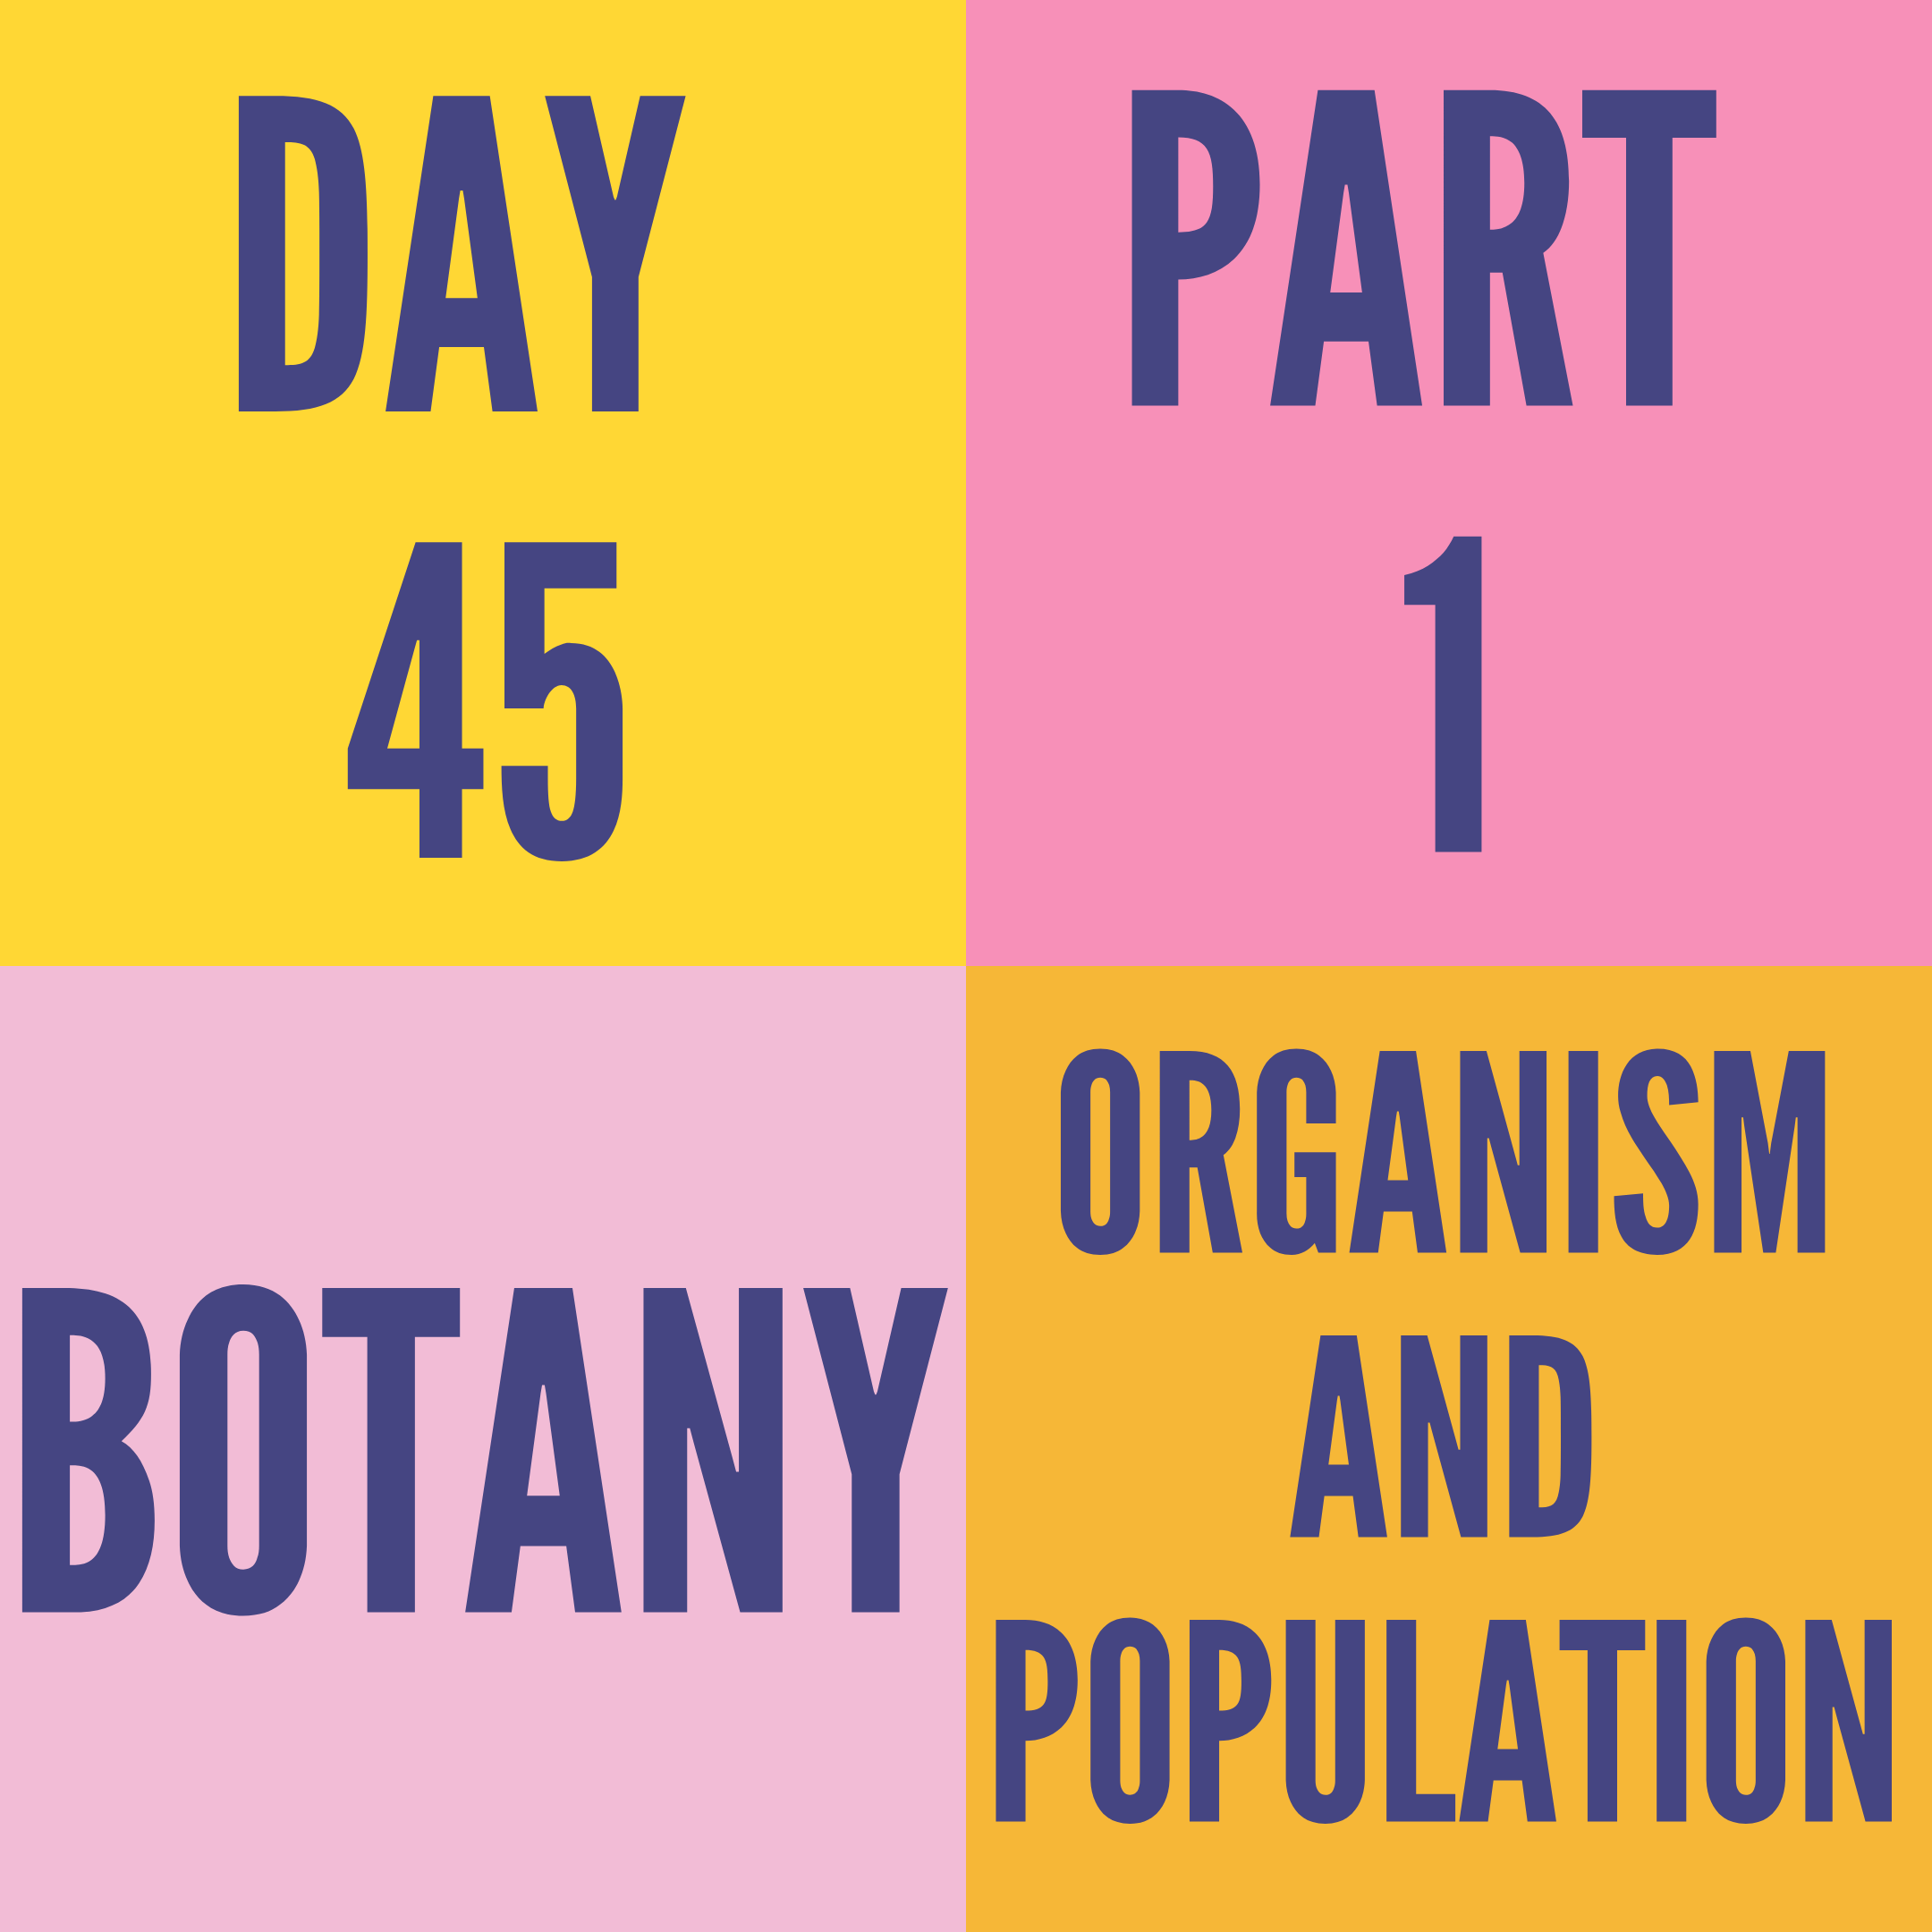 DAY-45 PART-1 ORGANISM AND POPULATION